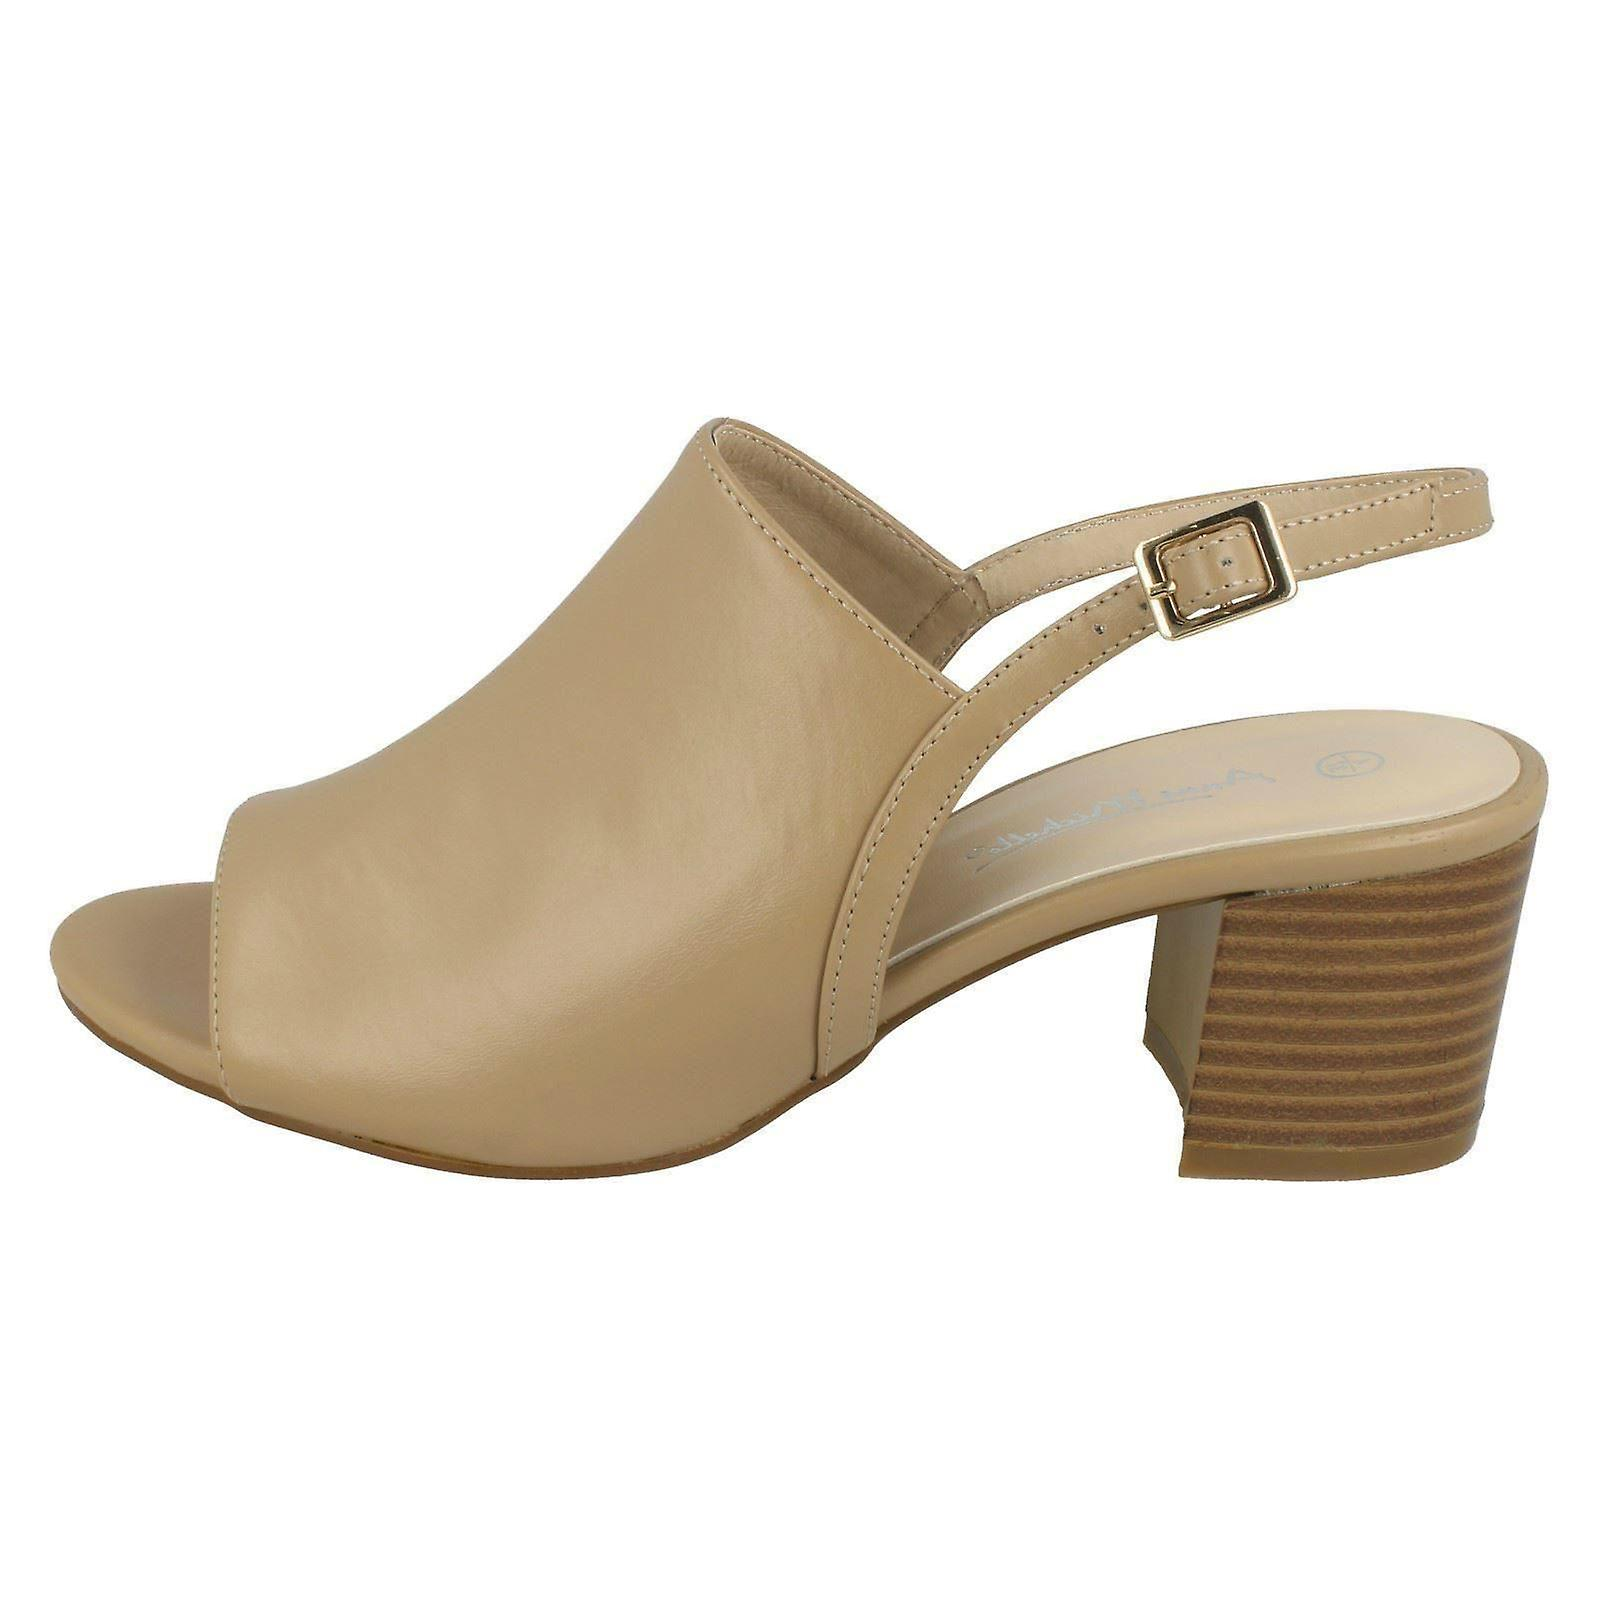 Ladies Anne Michelle Mid Heel Mules F10733